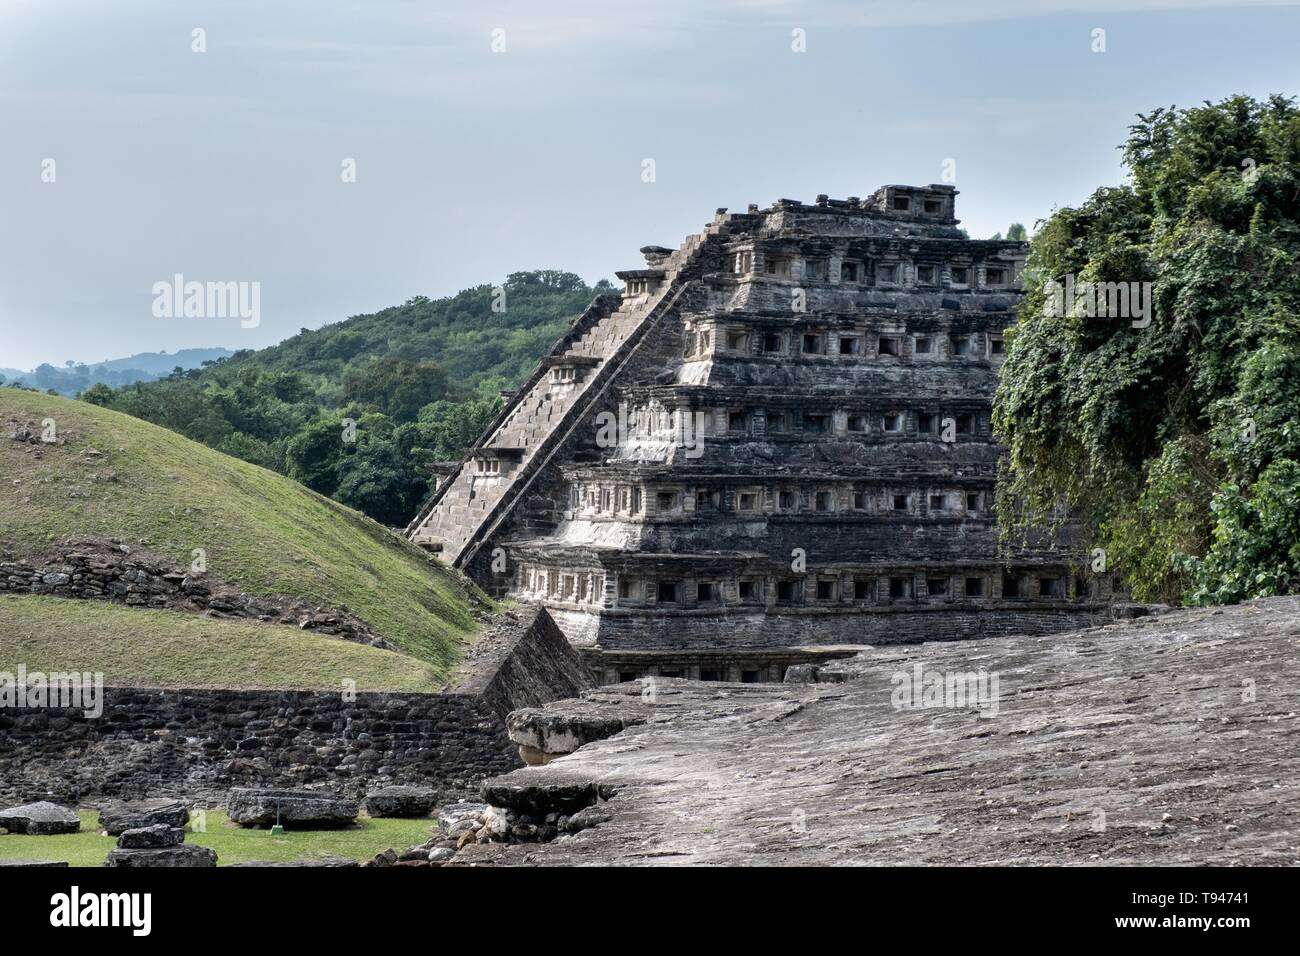 Mesoamerica Pyramid of the Niches at the pre-Columbian archeological complex of El Tajin in Tajin, Veracruz, Mexico. El Tajín flourished from 600 to 1200 CE and during this time numerous temples, palaces, ballcourts, and pyramids were built by the Totonac people and is one of the largest and most important cities of the Classic era of Mesoamerica. - Stock Image